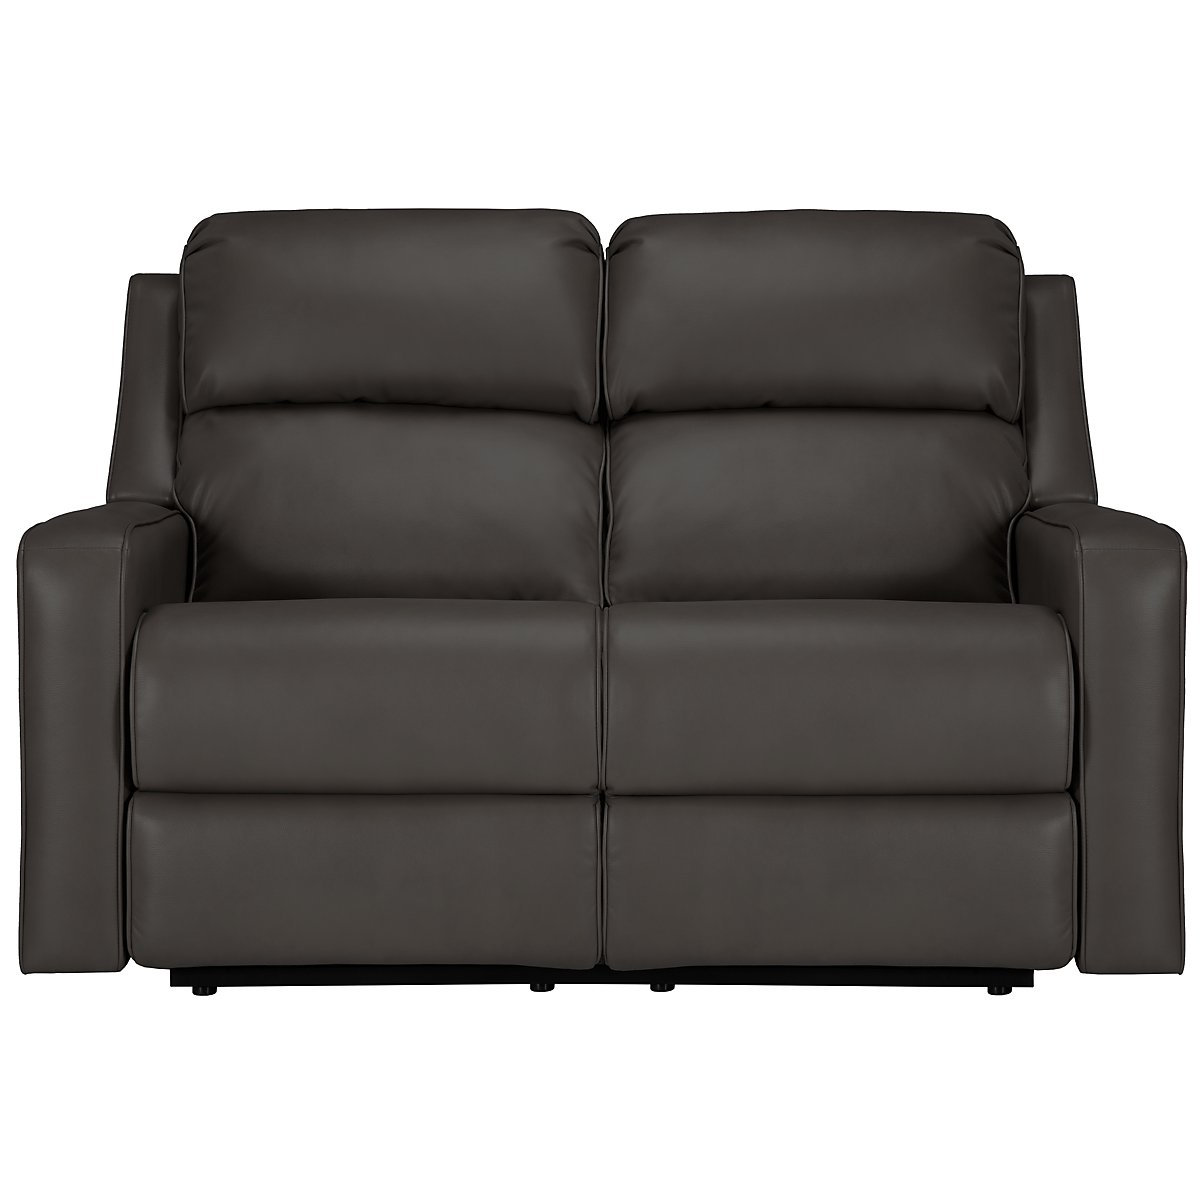 Rocco Gray Microfiber Power Reclining Loveseat